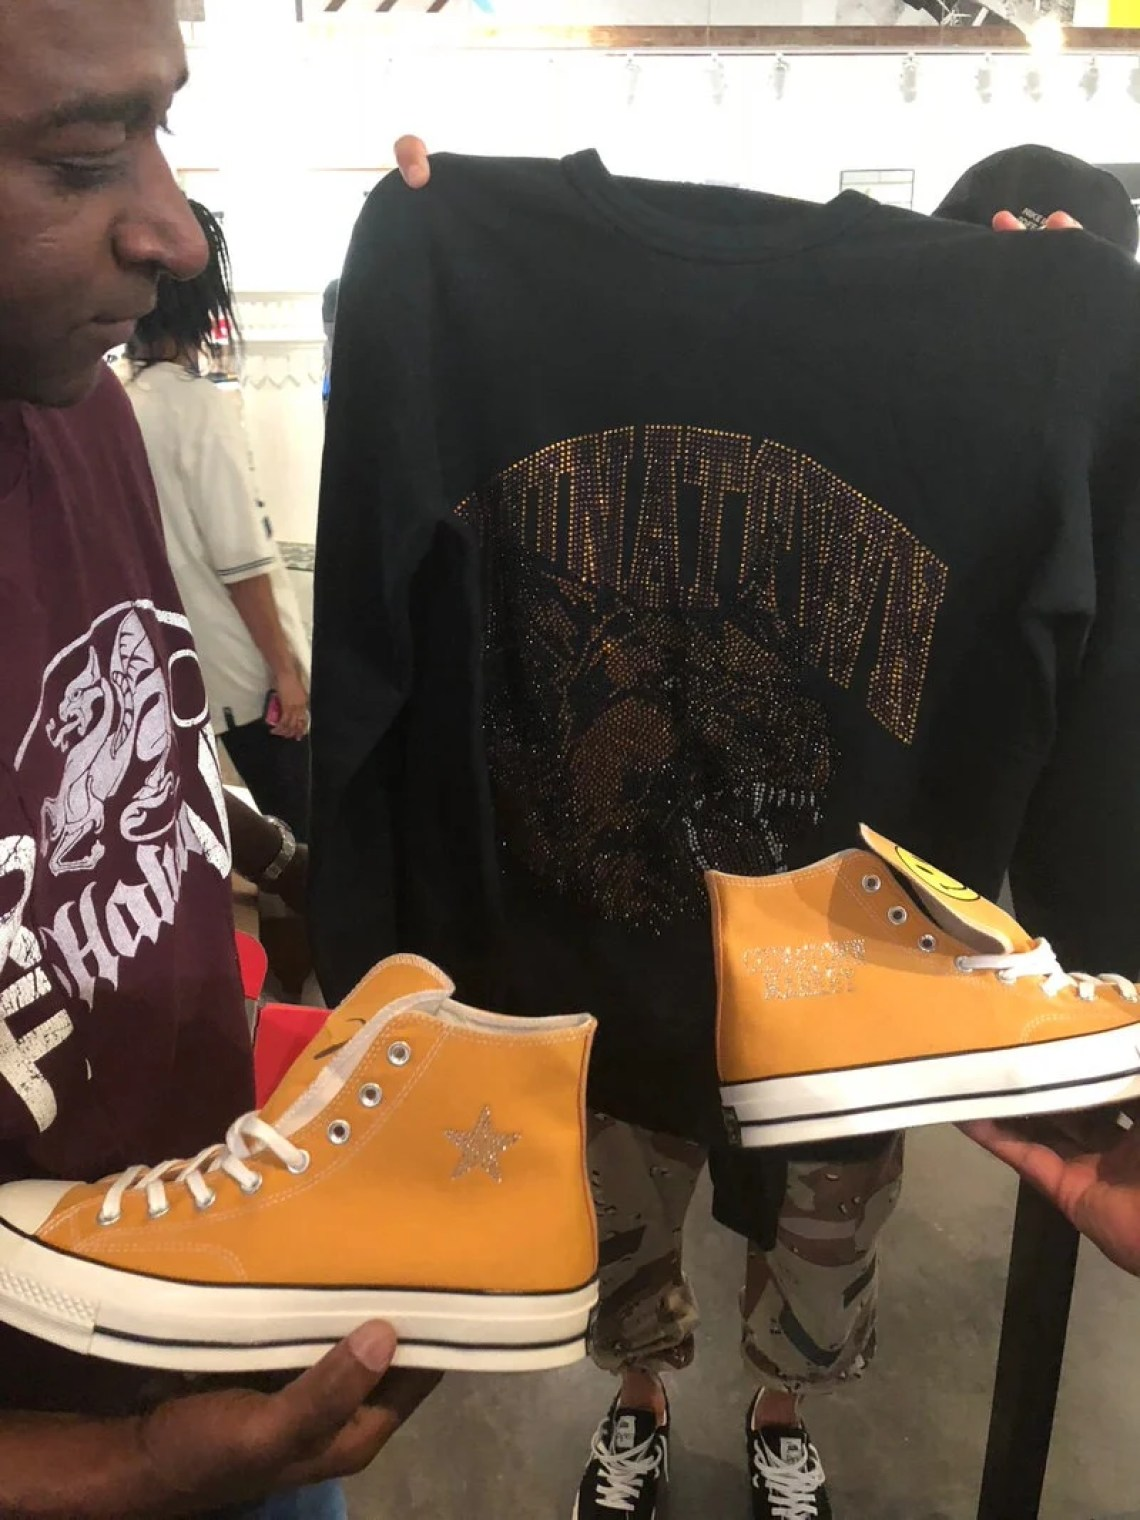 0e26ef80d9f1 Chinatown Market is Making Bootleg Chuck Taylors   So Should You ...